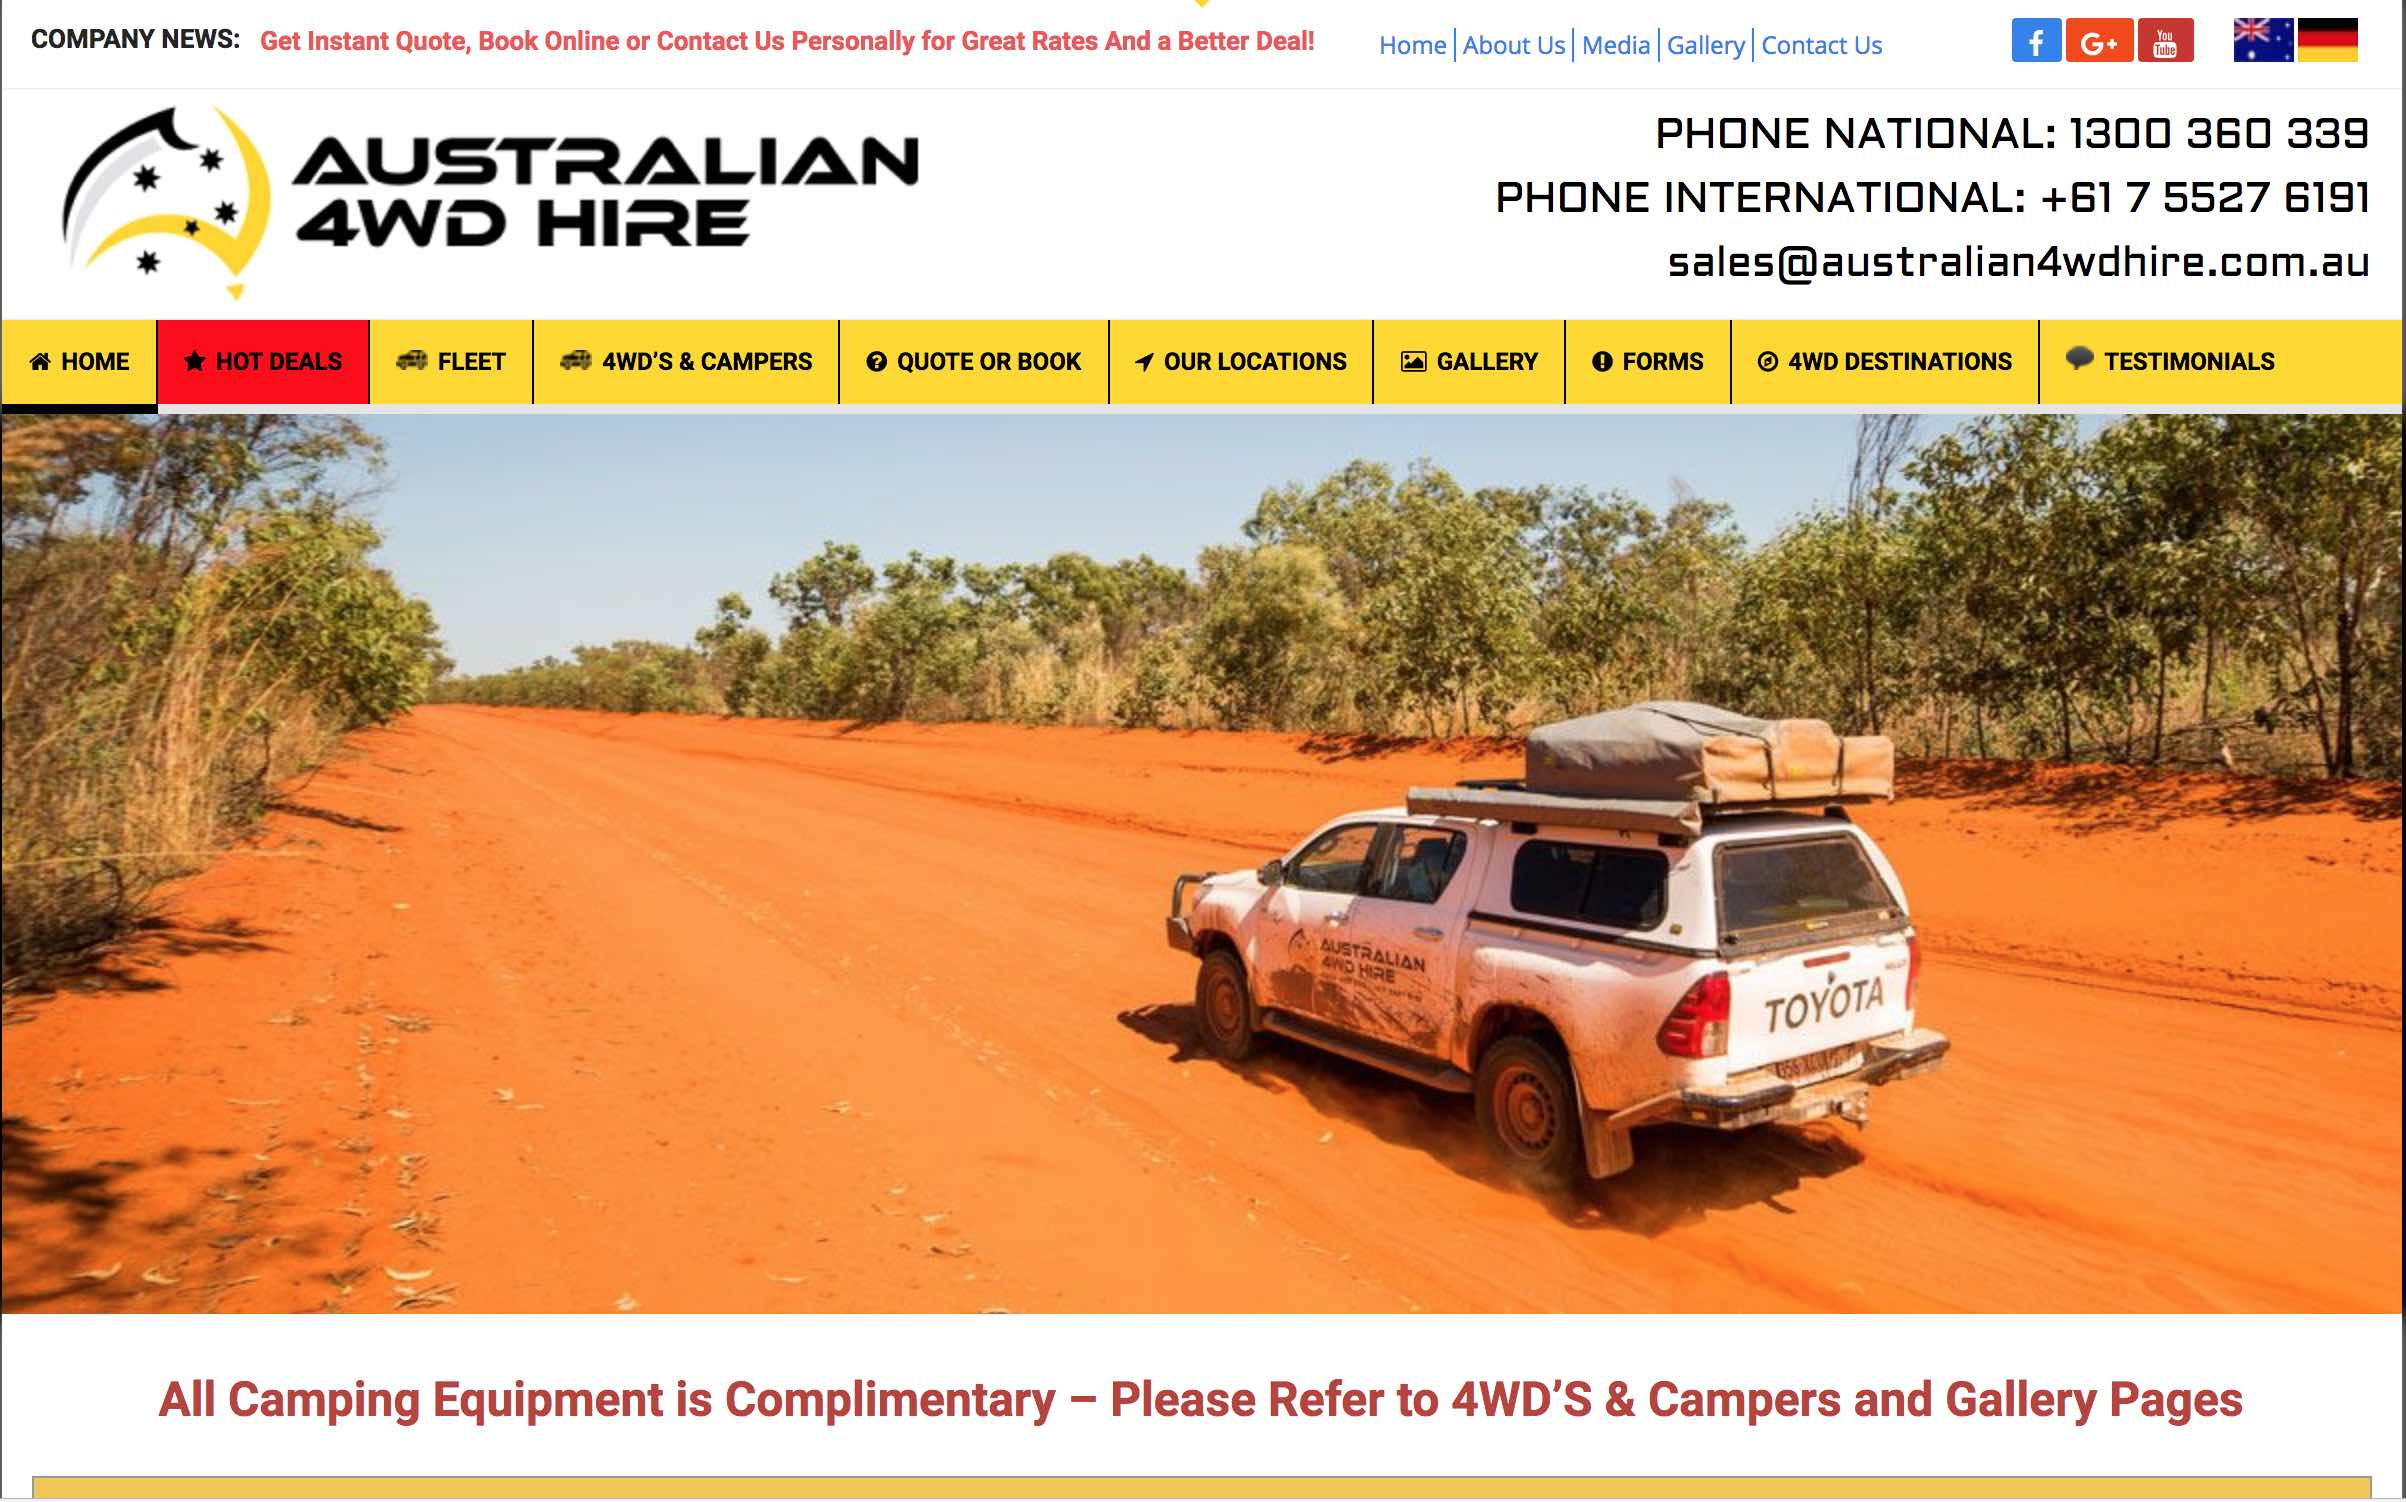 This 4WD hire company IS ripping off customers